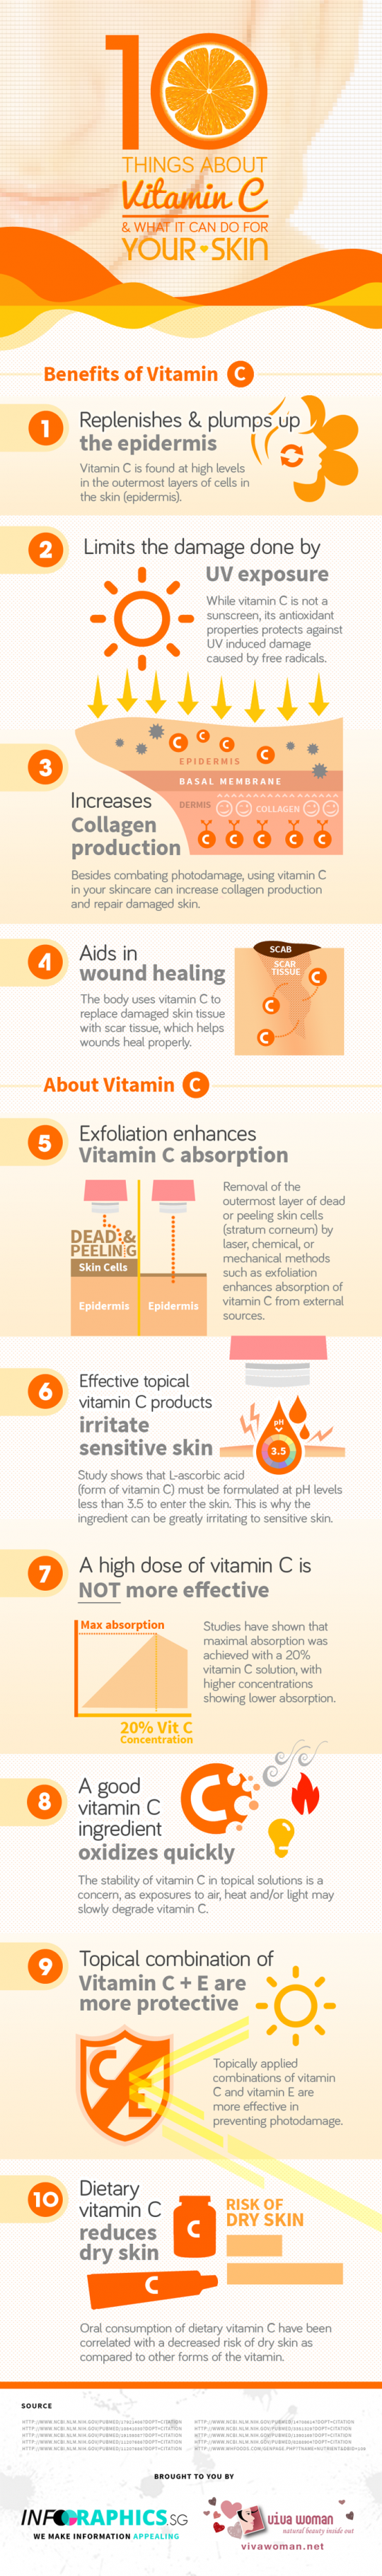 10 things about Vitamin C & what it can do for your skin